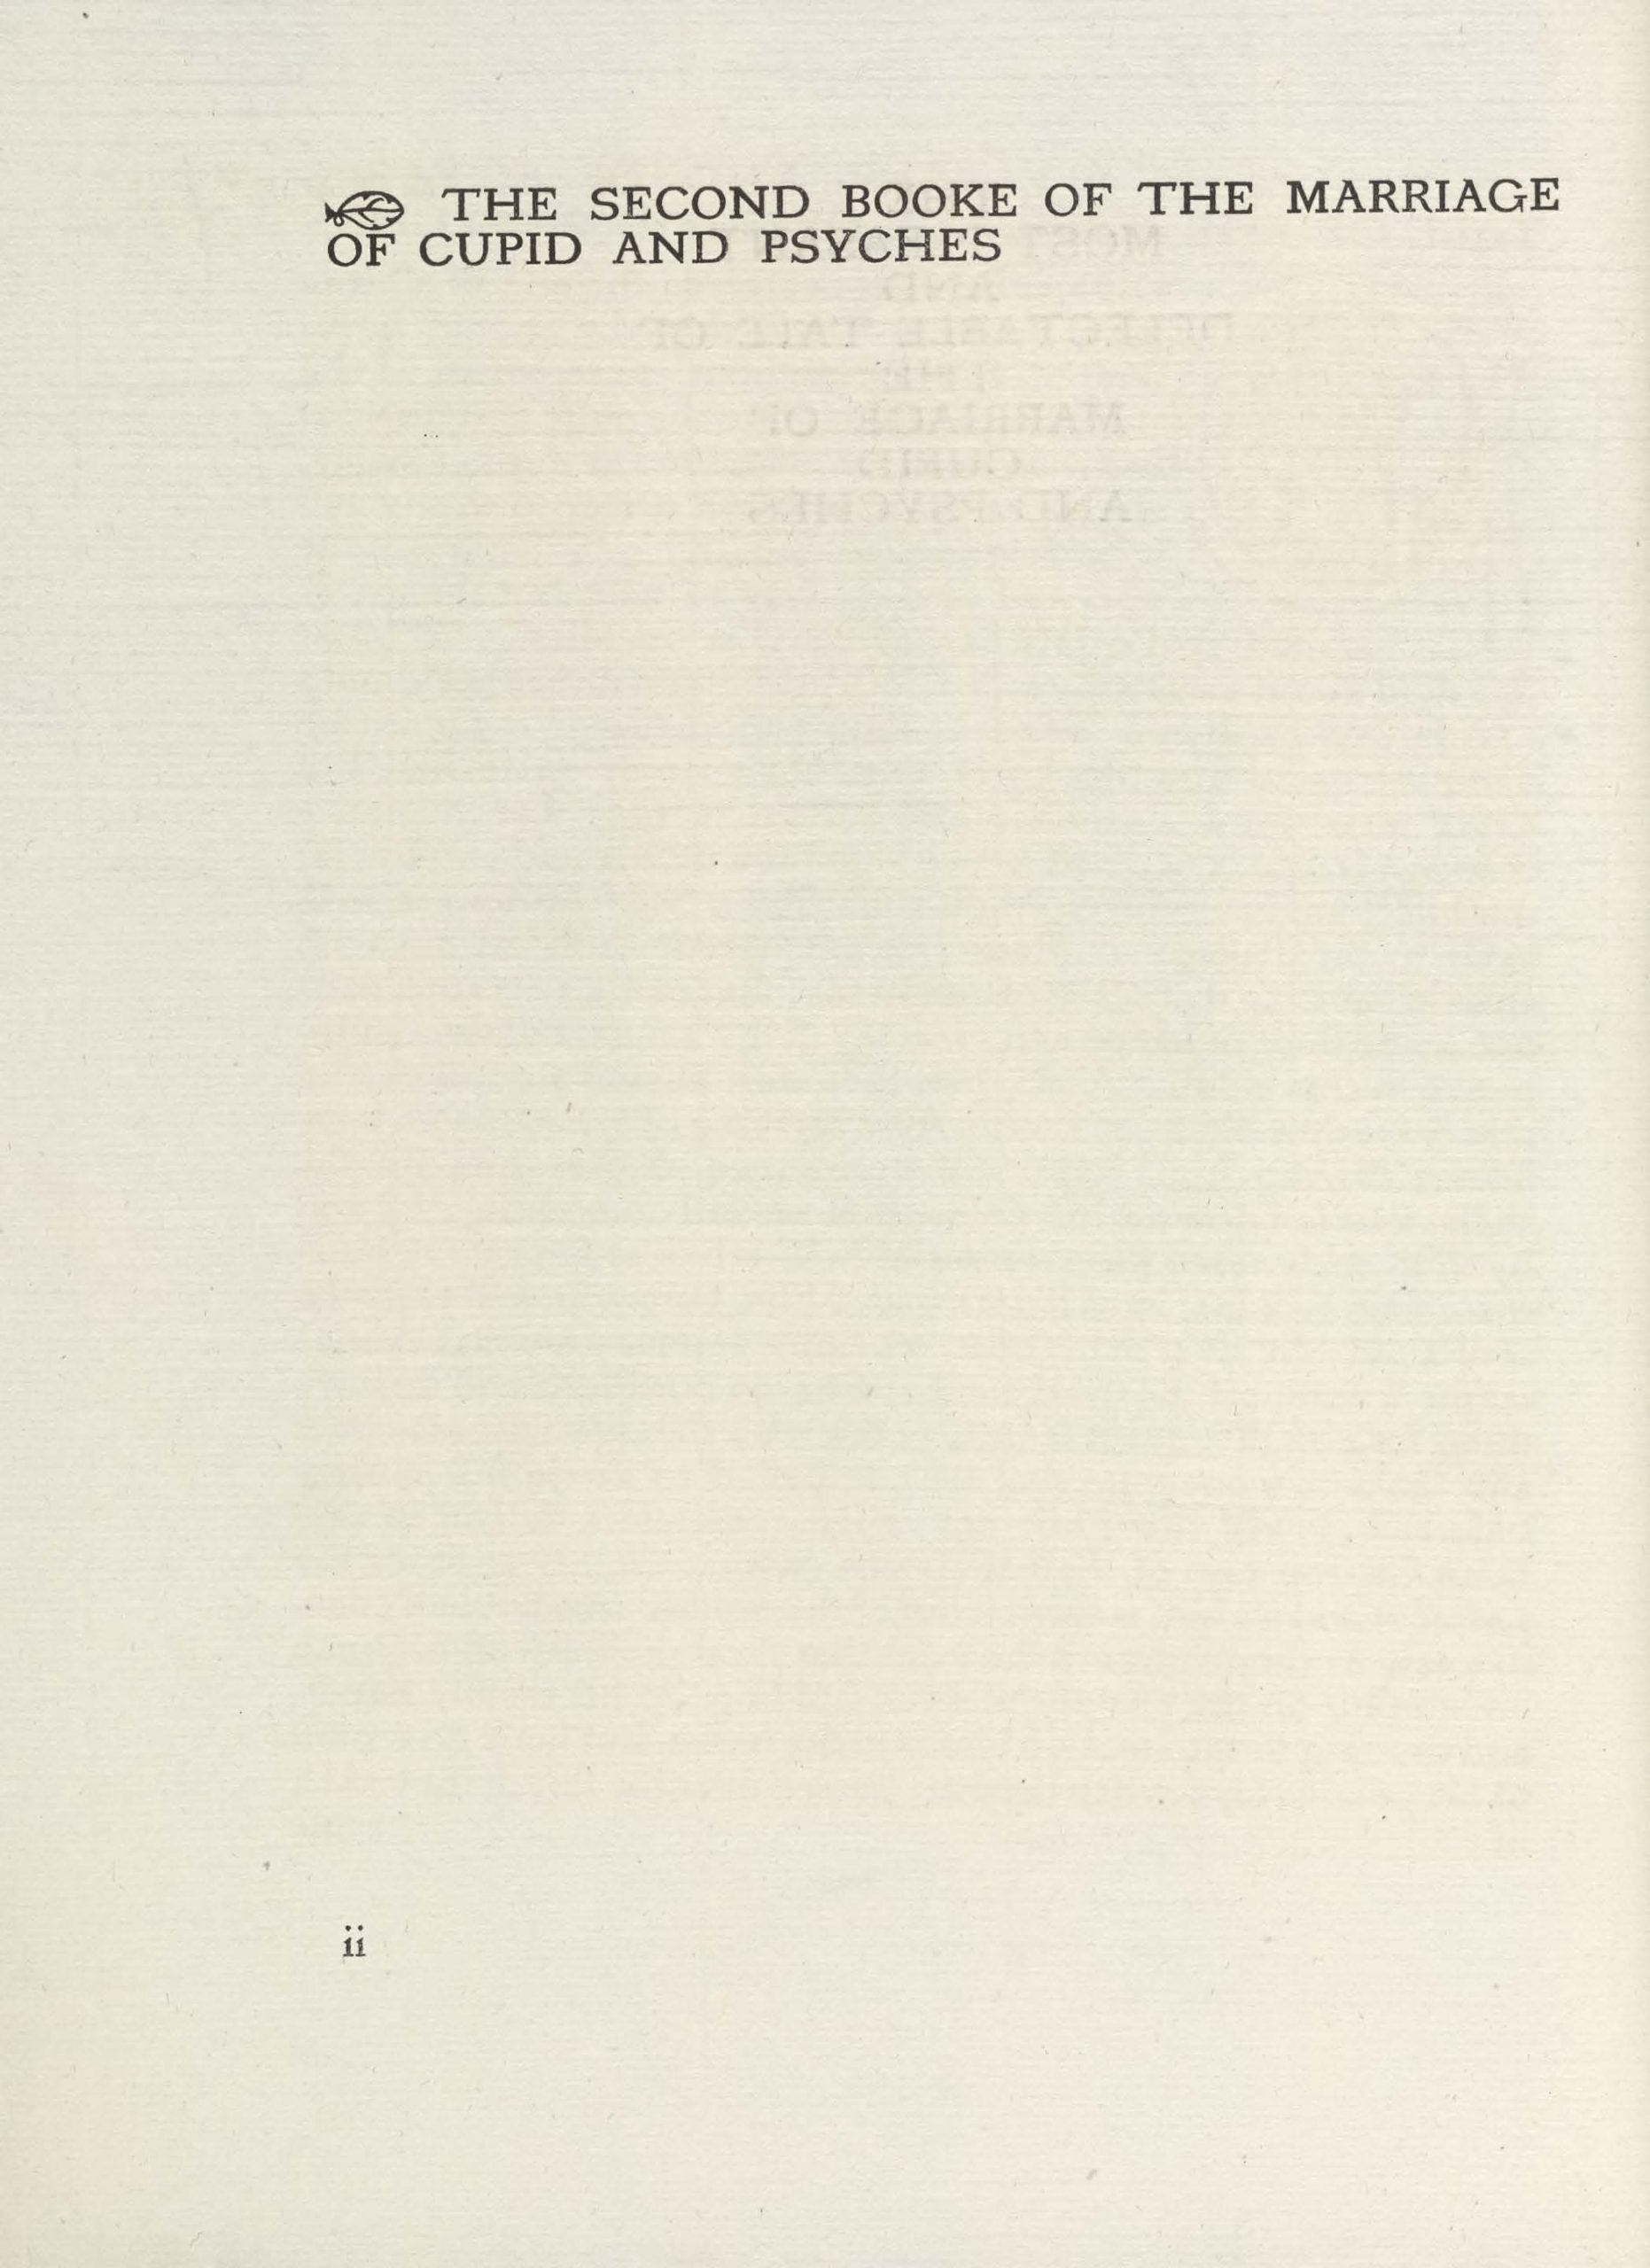 Page 2 of 4. The insert is printed on four pages, numbered i-iv, in black ink. On the first page, the title is printed in caps, centred, at the top of the page. The subheading is printed on the second page, aligned left, in caps, preceded by a fleuron. The third and fourth pages are full-page samples of the Vale type. The third page shows the title in caps, with fleurons, and an illuminated drop-cap P. Within the P is a small historiated image, or scene. In the left foreground, a nude woman bends in profile toward the centre of the image, descending steps, her body following the curve of the letter P. She carries a basket over her left arm and clutches her long hair in her right. On the right side of the image, three heads of a hydra emerge from an open doorway, facing the woman. They are set against a brick wall background. The rest of the text continues in upper and lower case. The page has a large right-hand margin, which is empty except for a fleuron and subtitle at the top of the page. The fourth page is the same as the third, except the text is in all caps with a much smaller right margin.